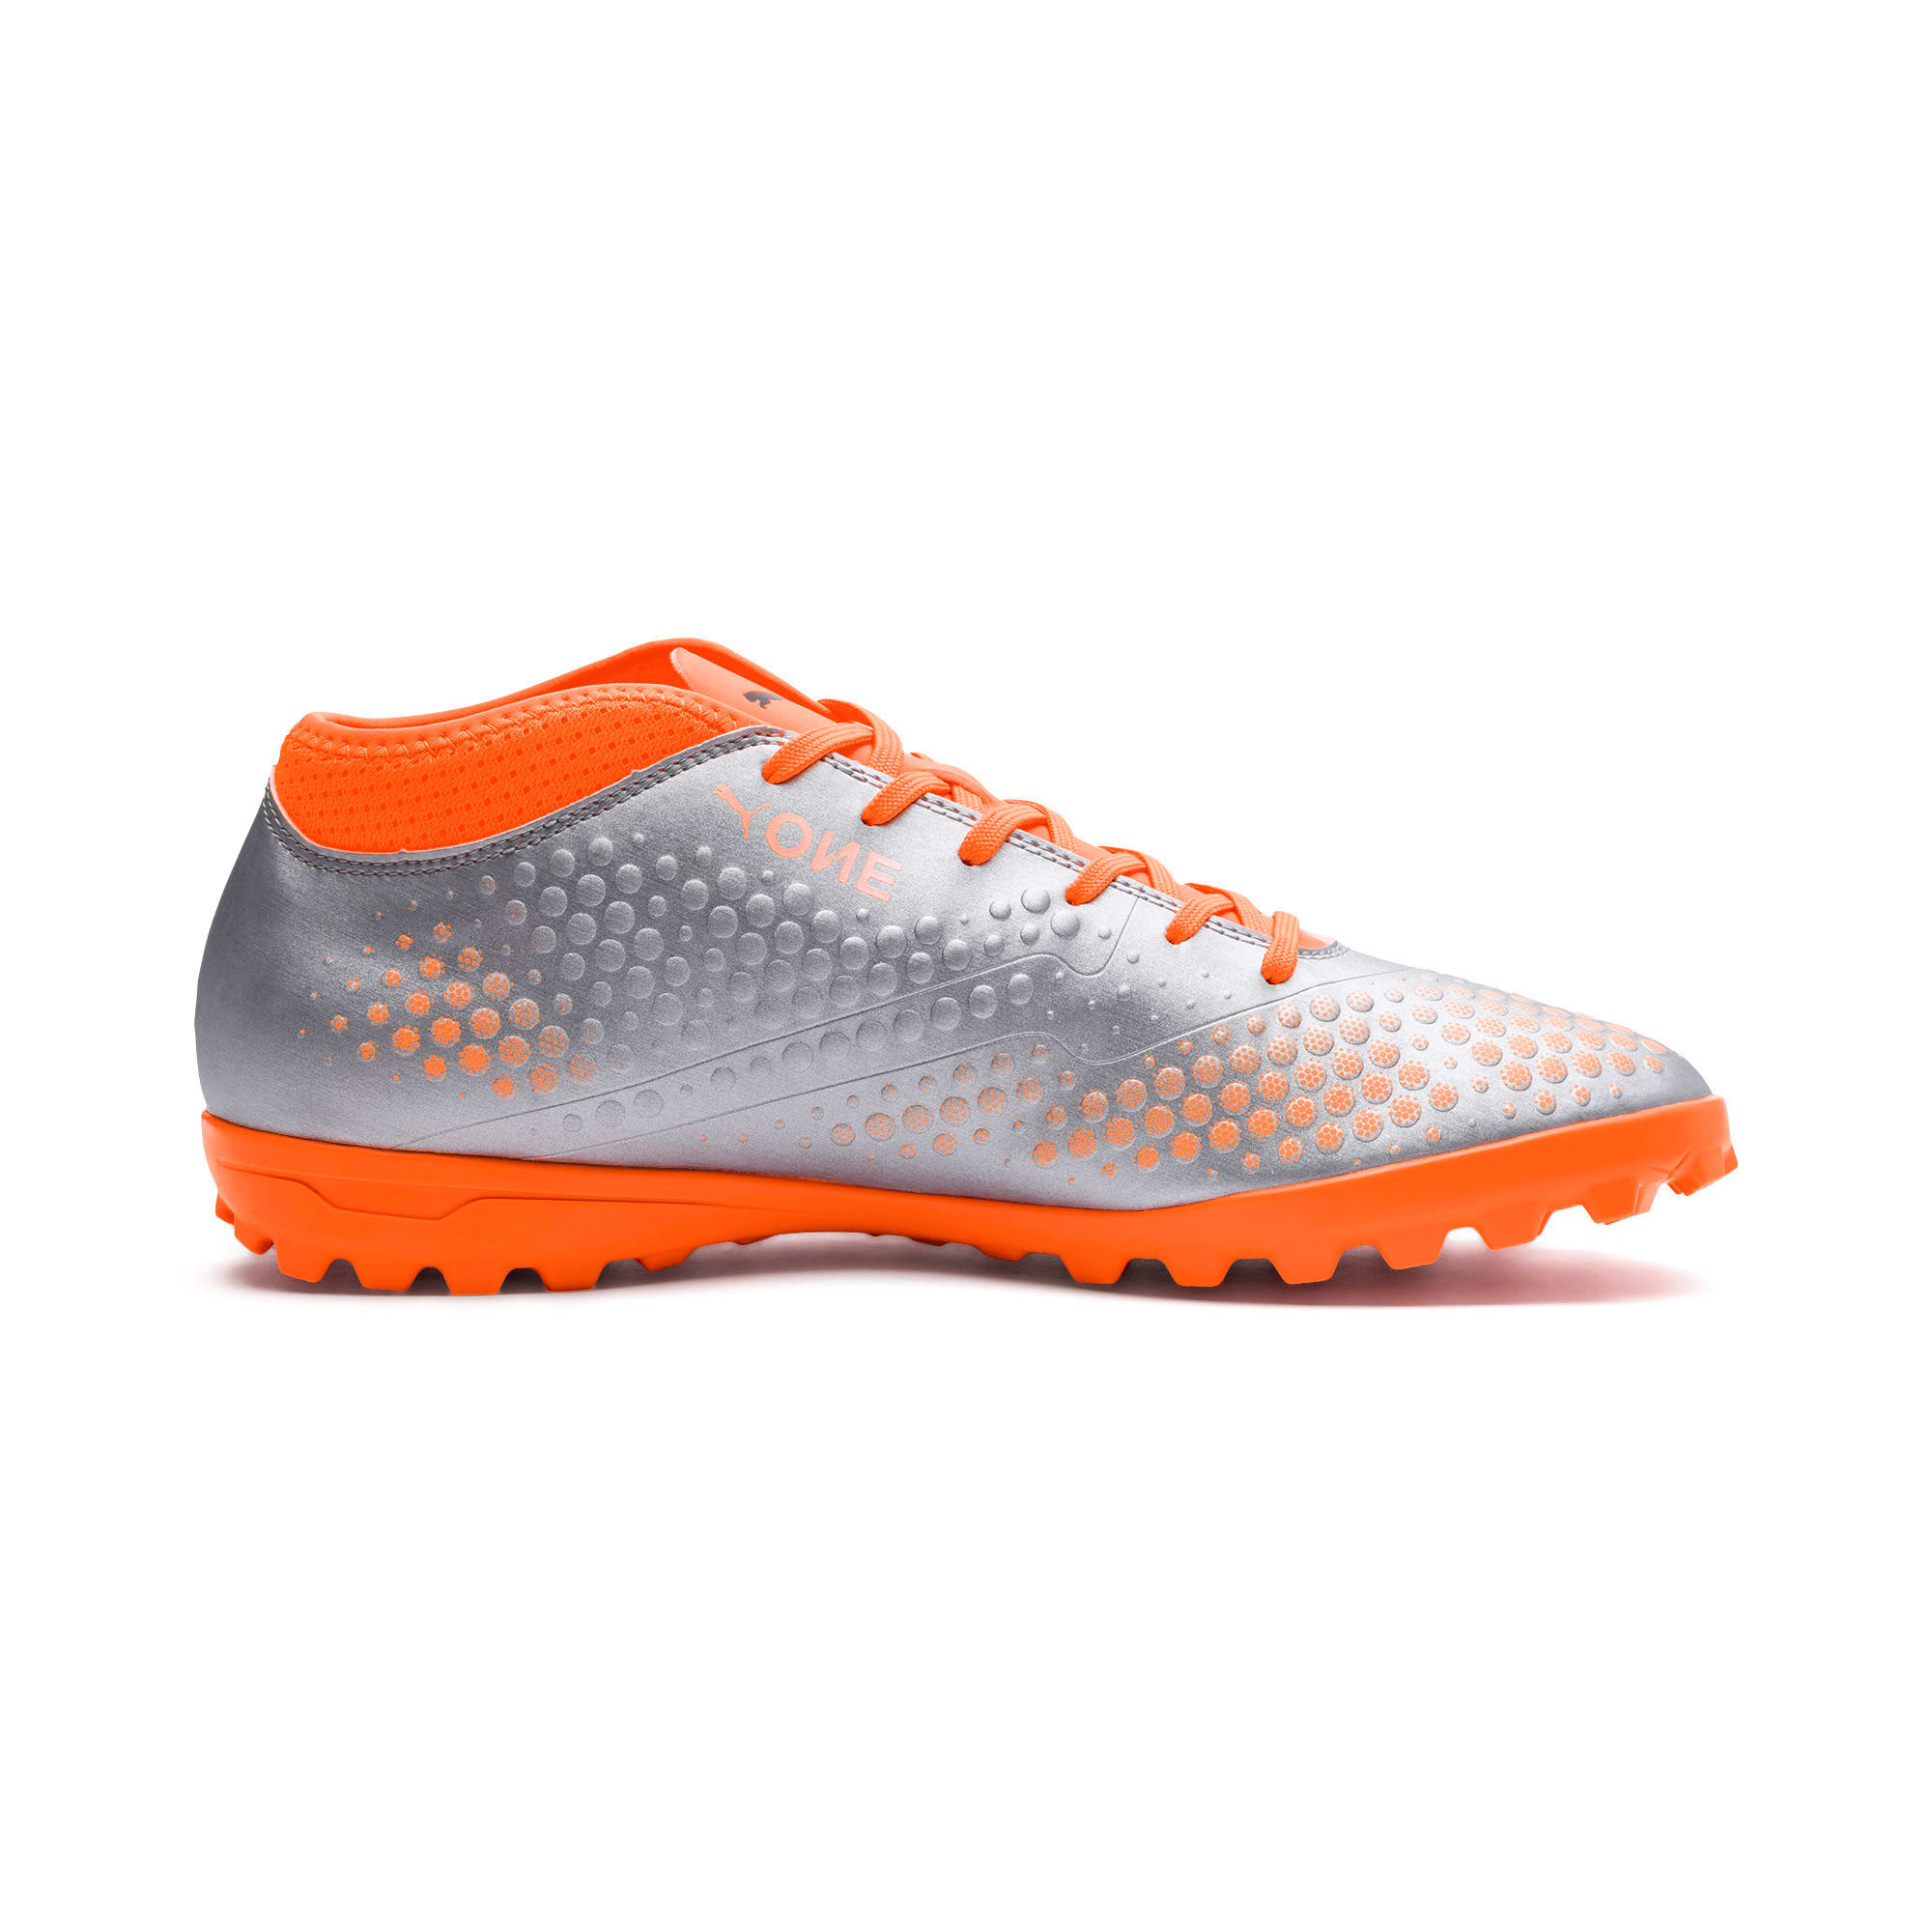 Thumbnail 6 of PUMA ONE 4 Synthetic TT Men's Football Boots, Silver-Orange-Black, medium-IND